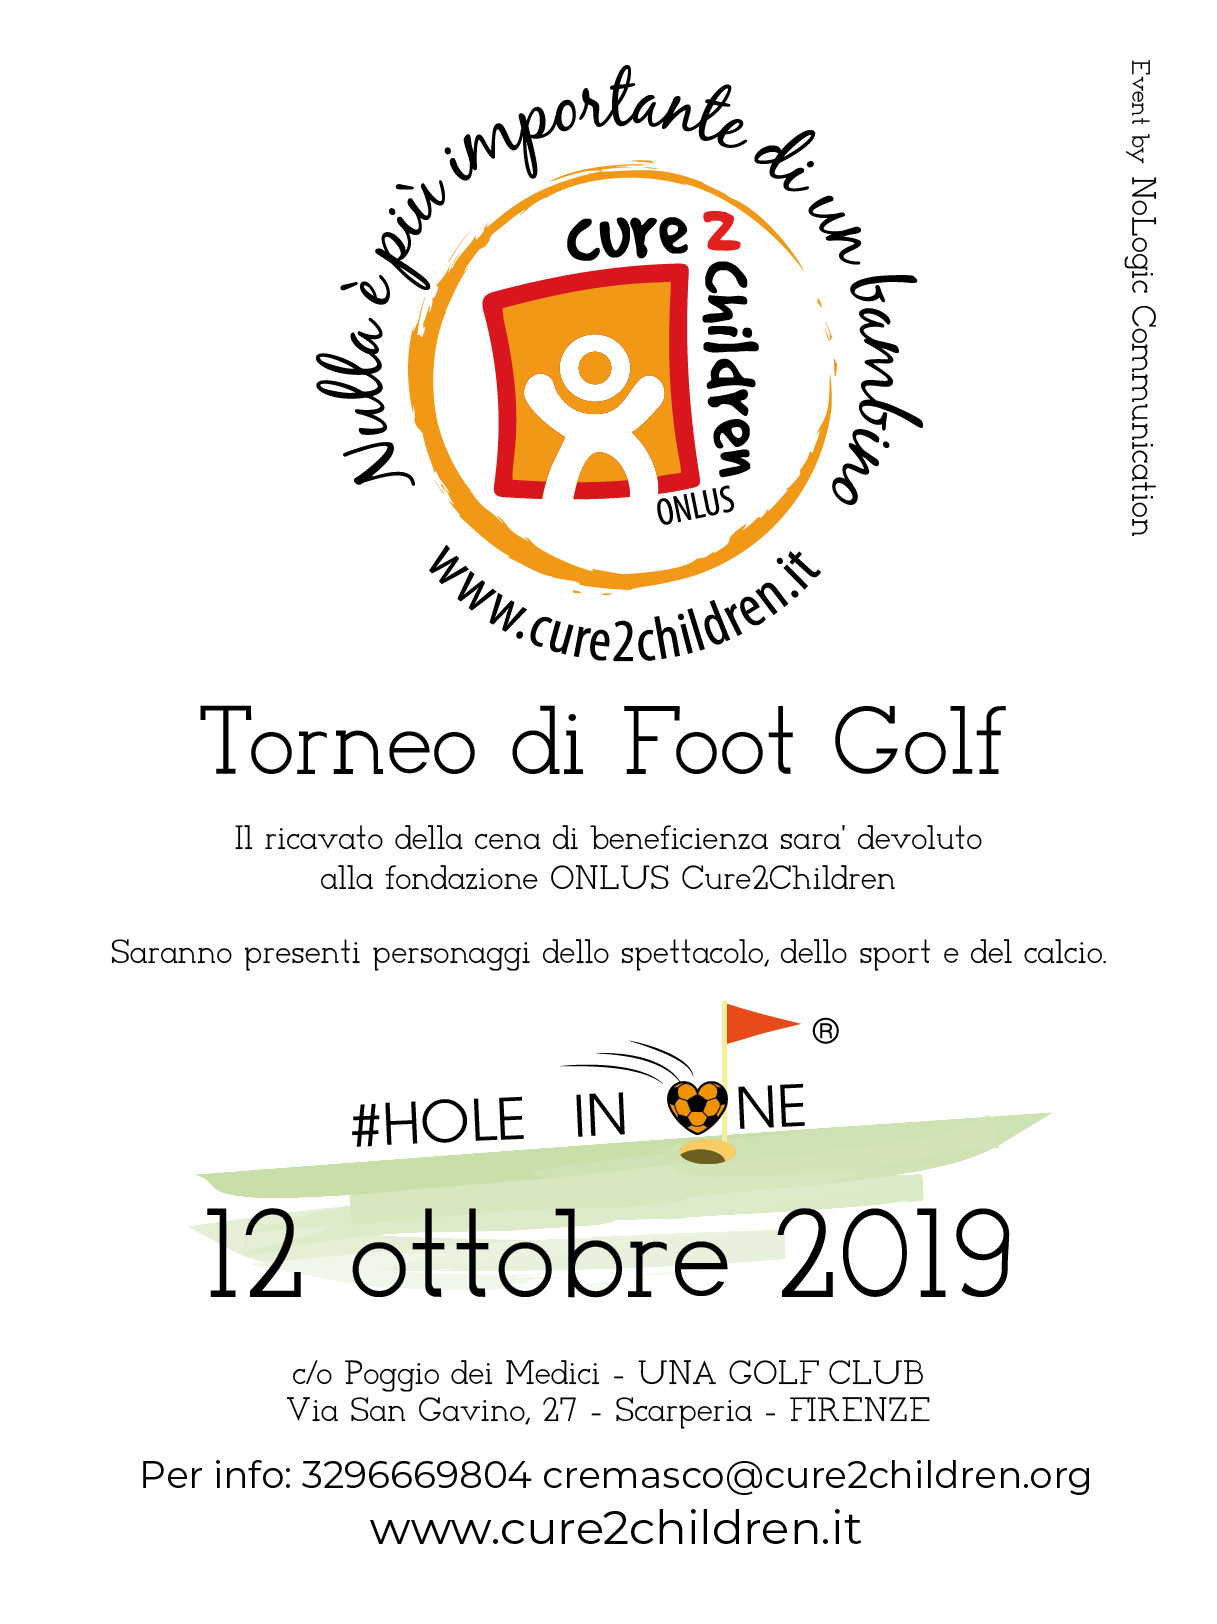 Torneo di Foot Golf - Hole in One